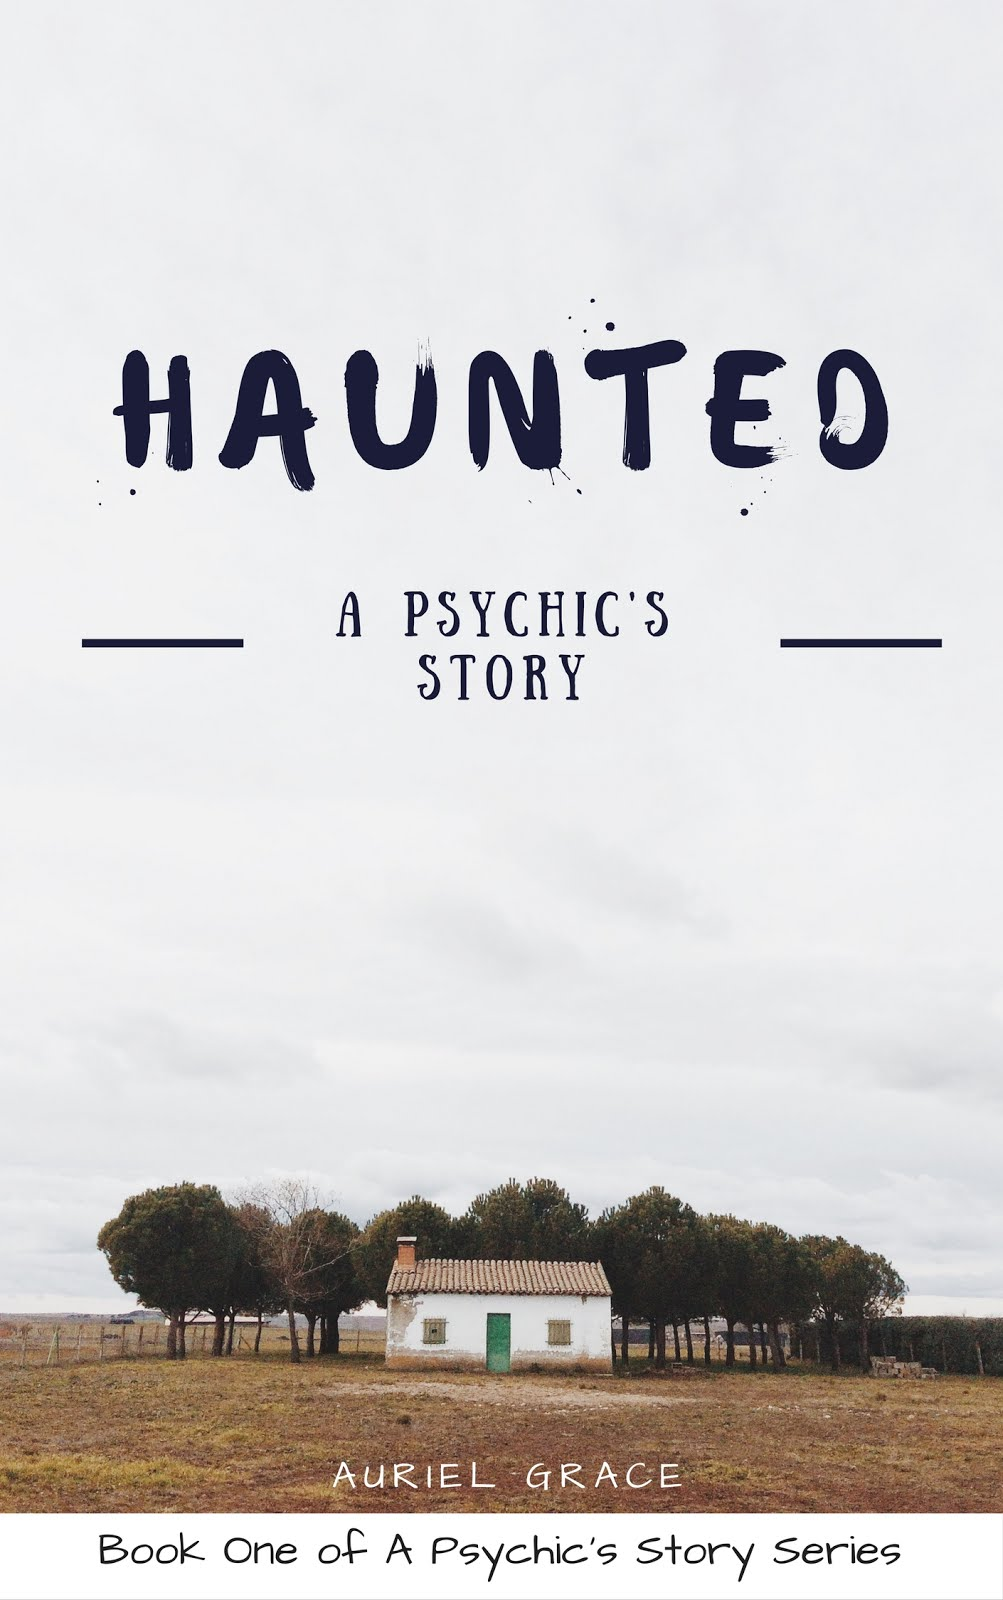 Haunted - A Psychic's Story